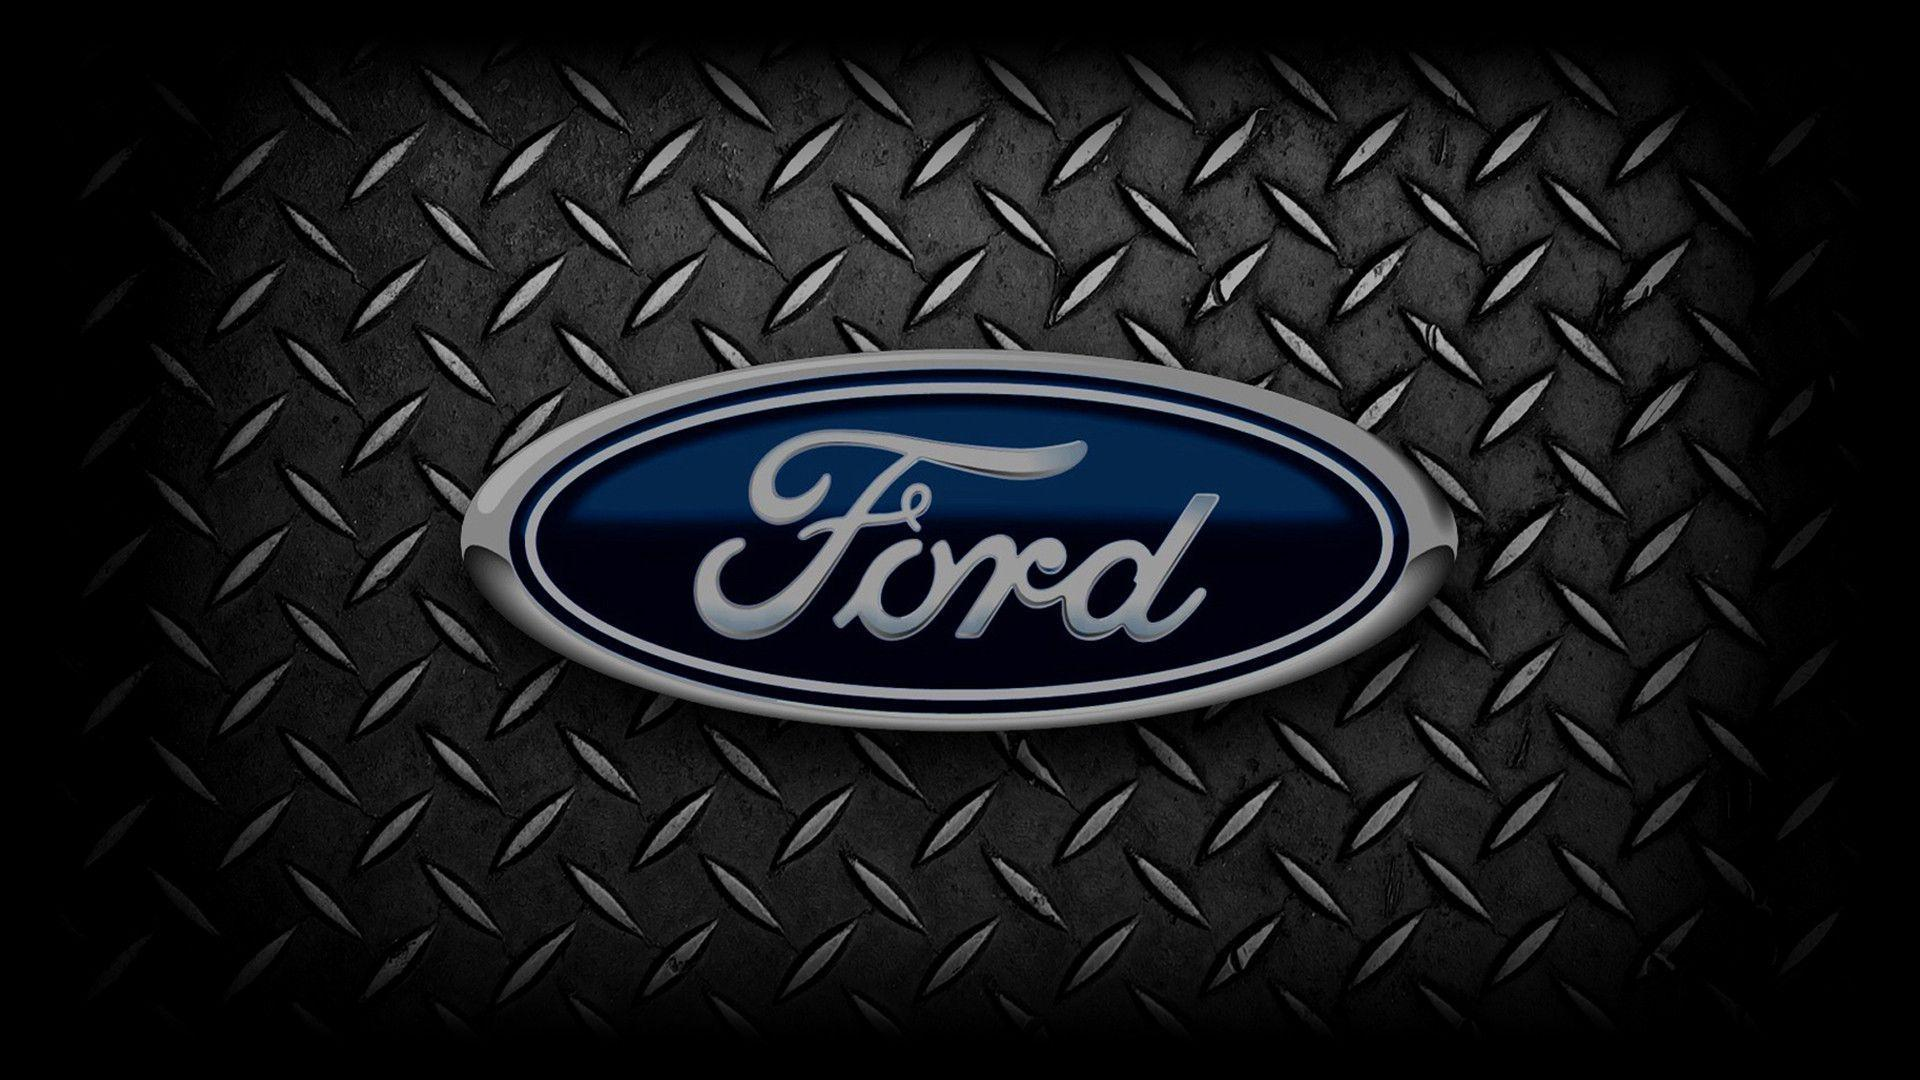 Types of ford Wallpaper design ideas